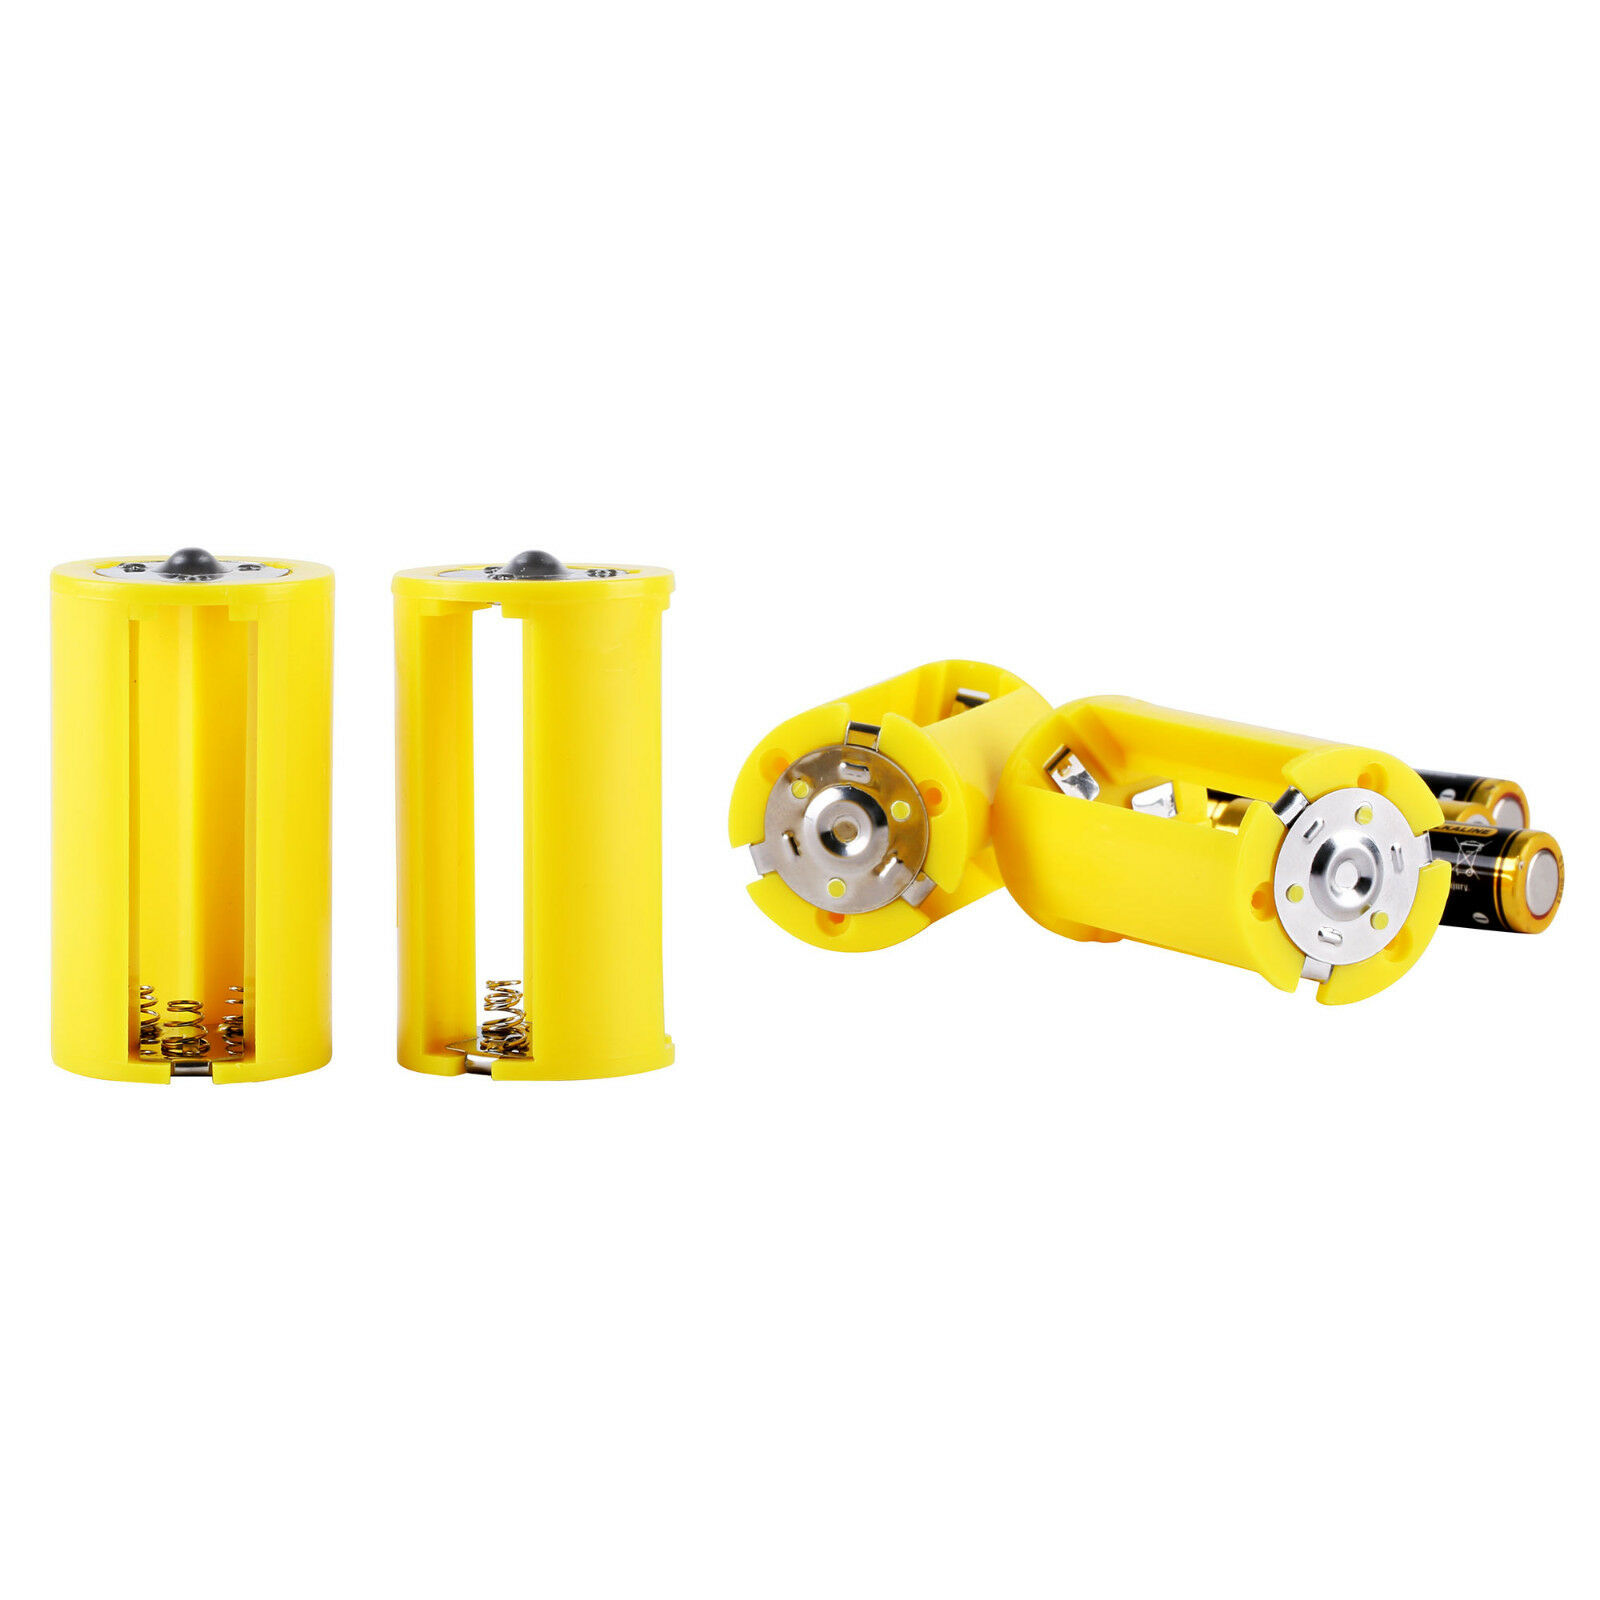 4pcs Parallel AA Battery Adapters Holder 1.5V Converter 3 AA To 1 D Size Yellow